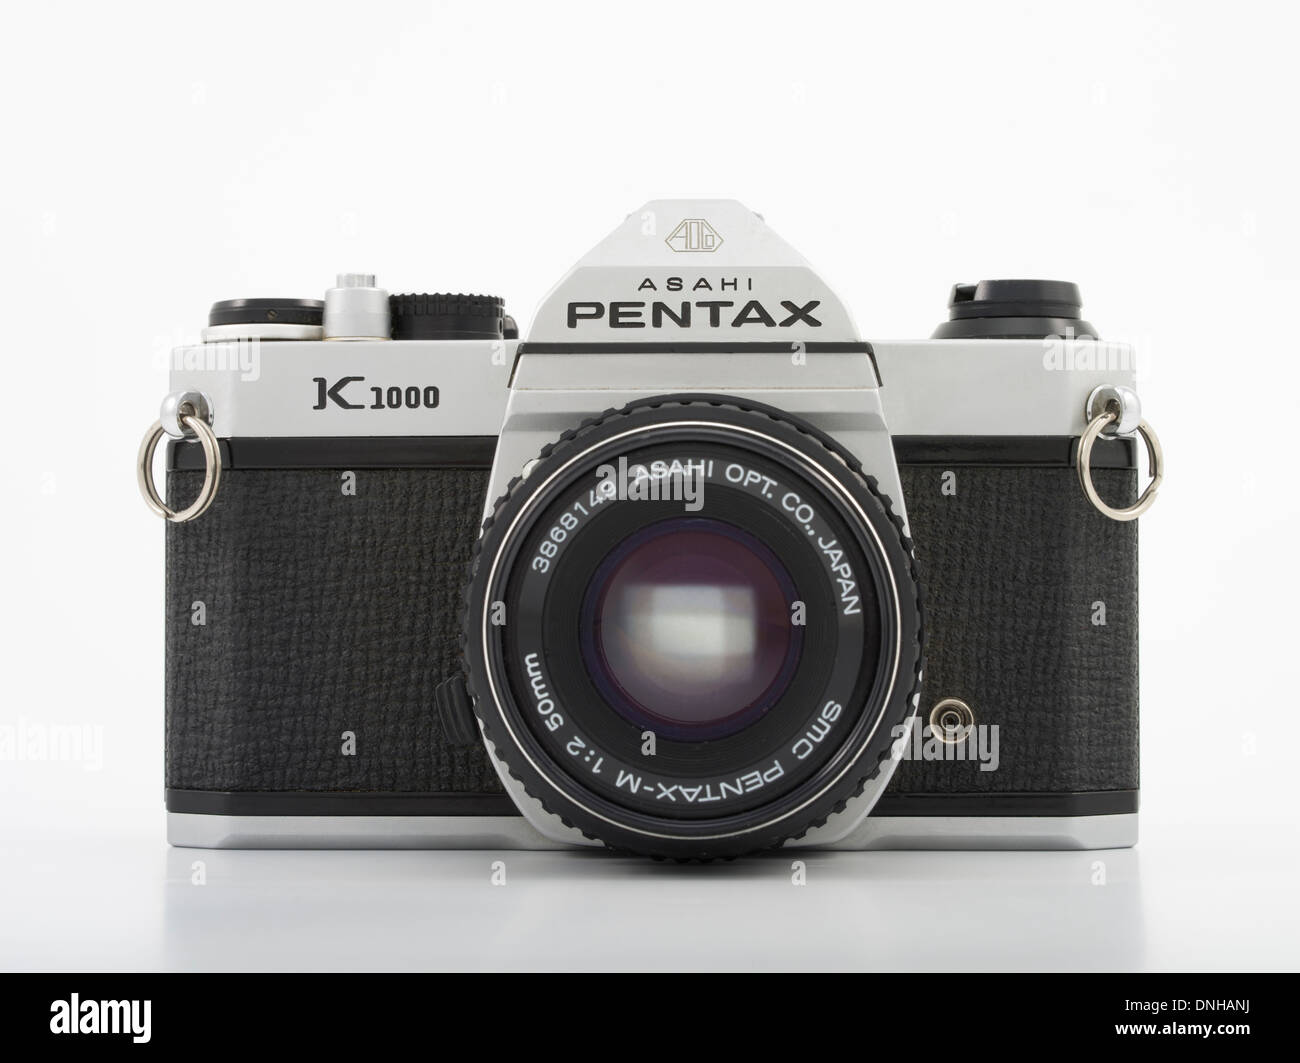 Asahi Pentax K1000 35mm SLR film camera. 1976 Made in Japan Asahi Optical Co., Ltd. Stock Photo